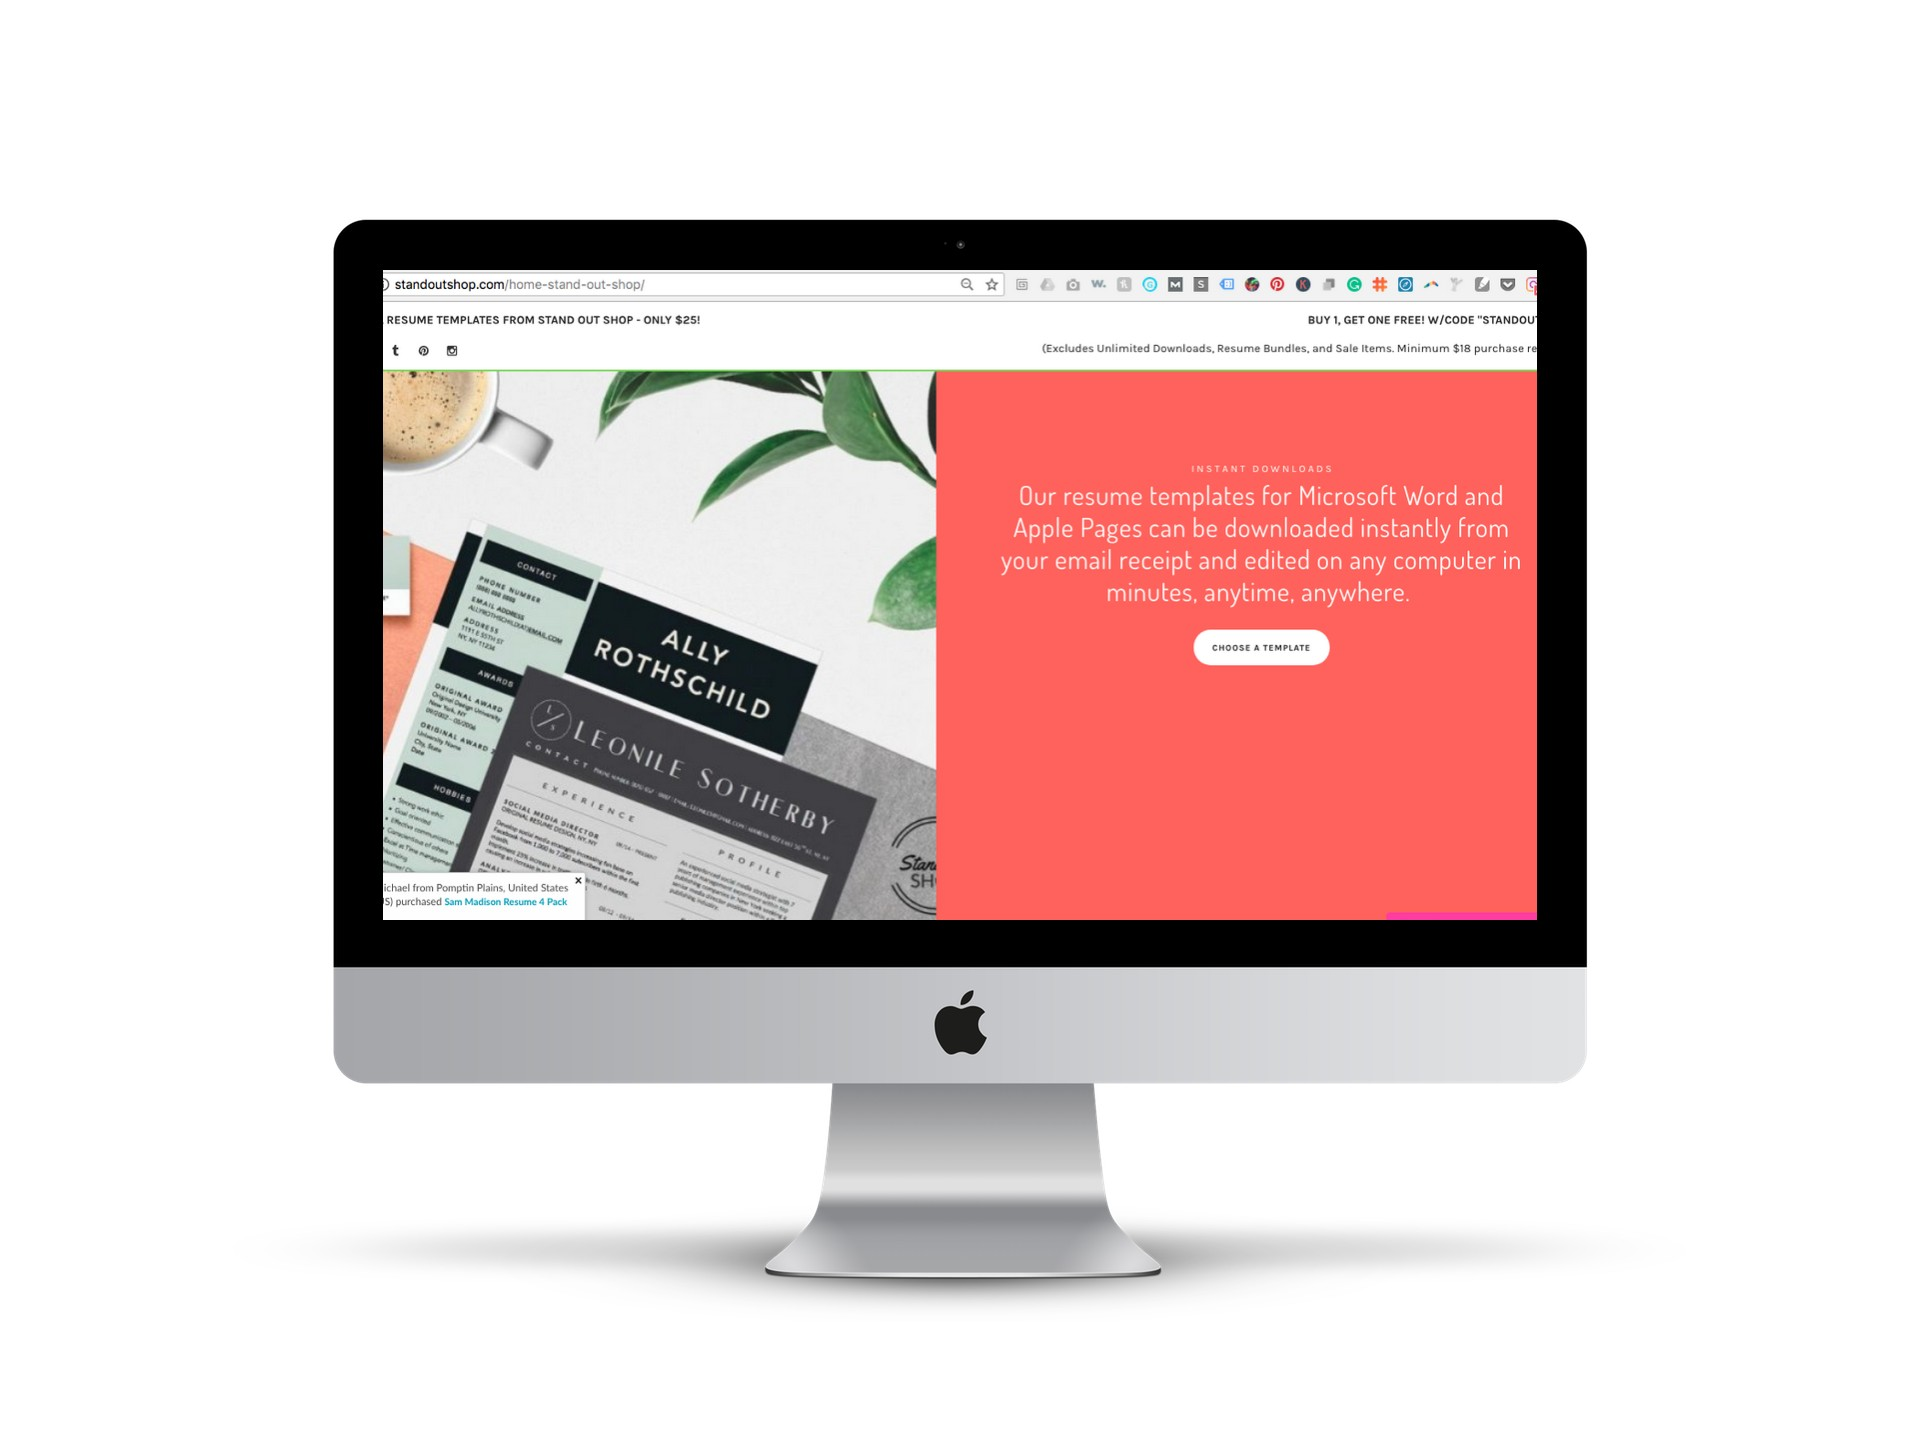 5-STAND OUT SHOP EYEBRANDIT WEB DESIGN